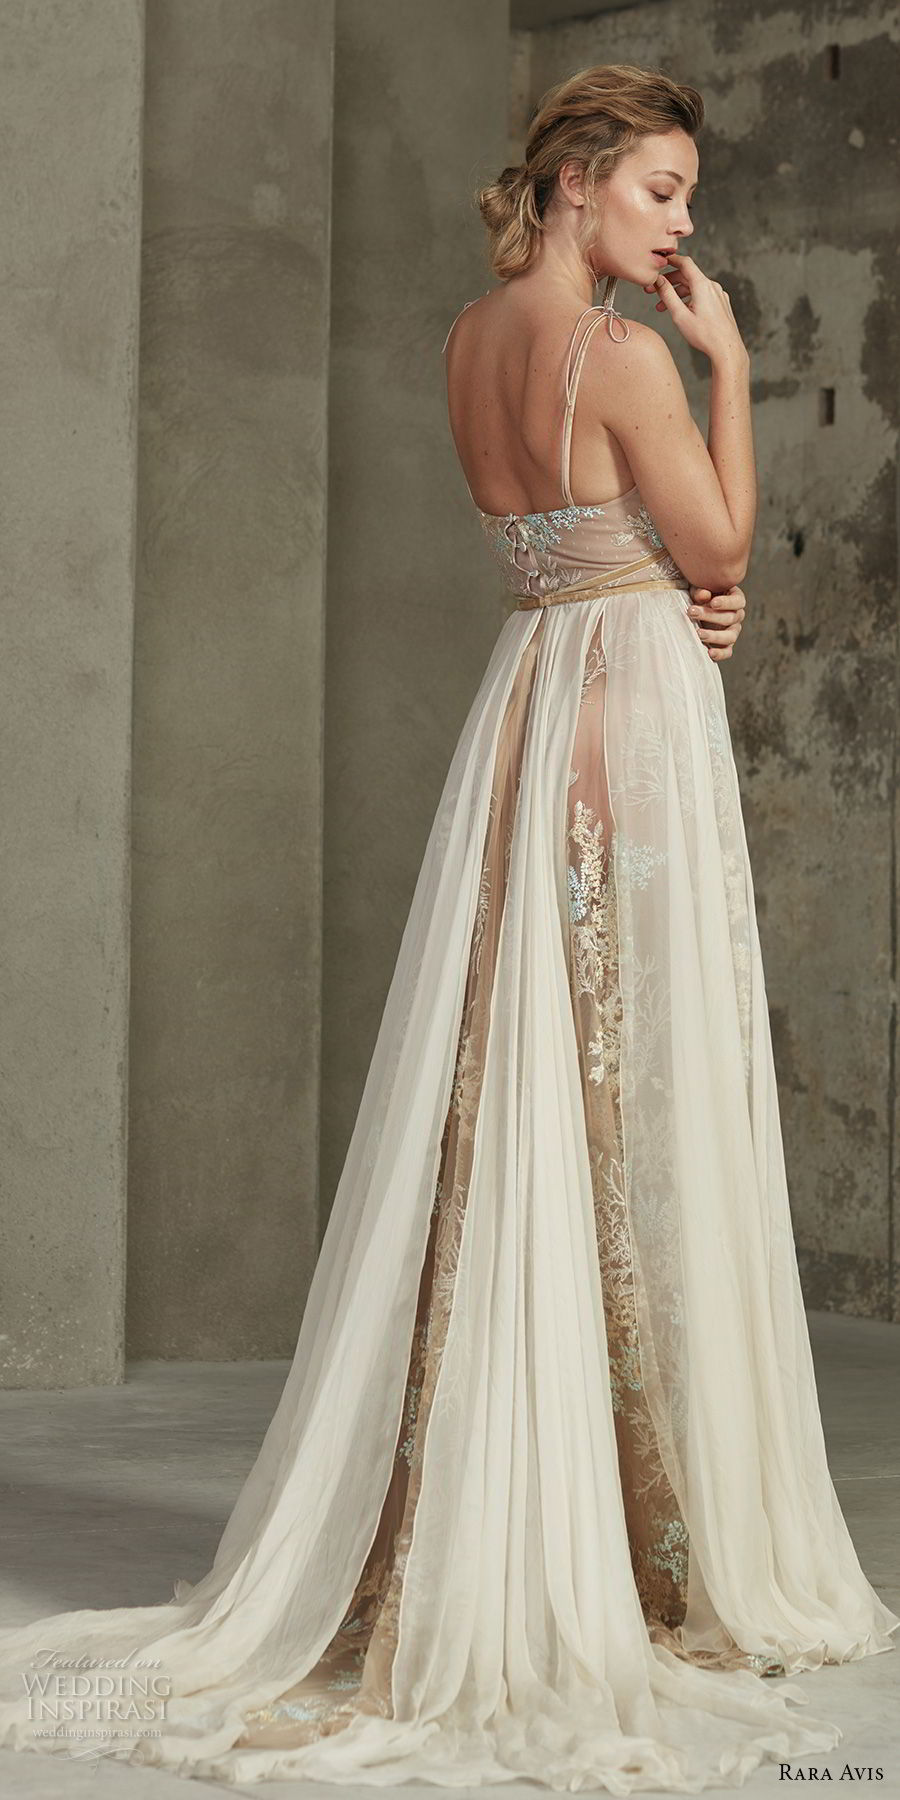 rara avis 2017 bridal thin strap sweetheart neckline full embellishment elegant romantic soft a line wedding dress sweep train (13) bv